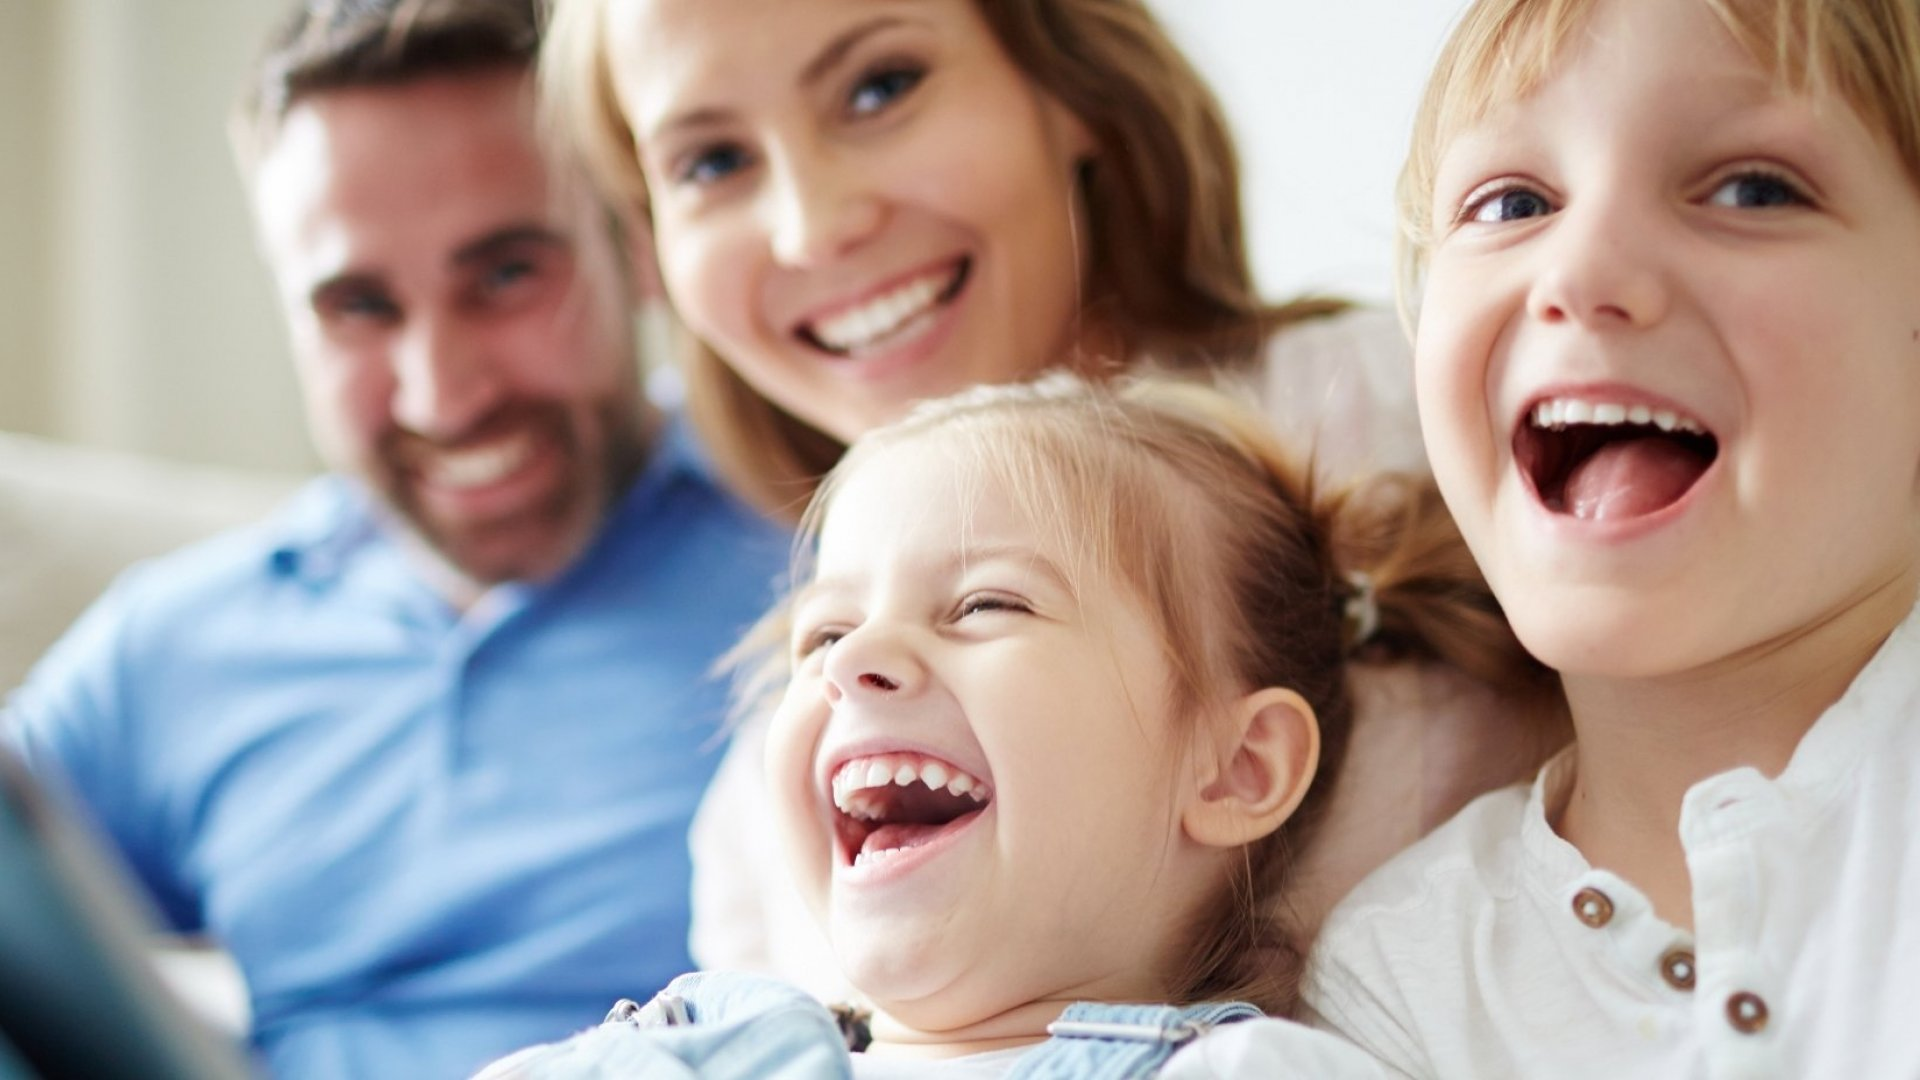 Science Says Happier People Are Raised by Parents Who Do This 1 Thing